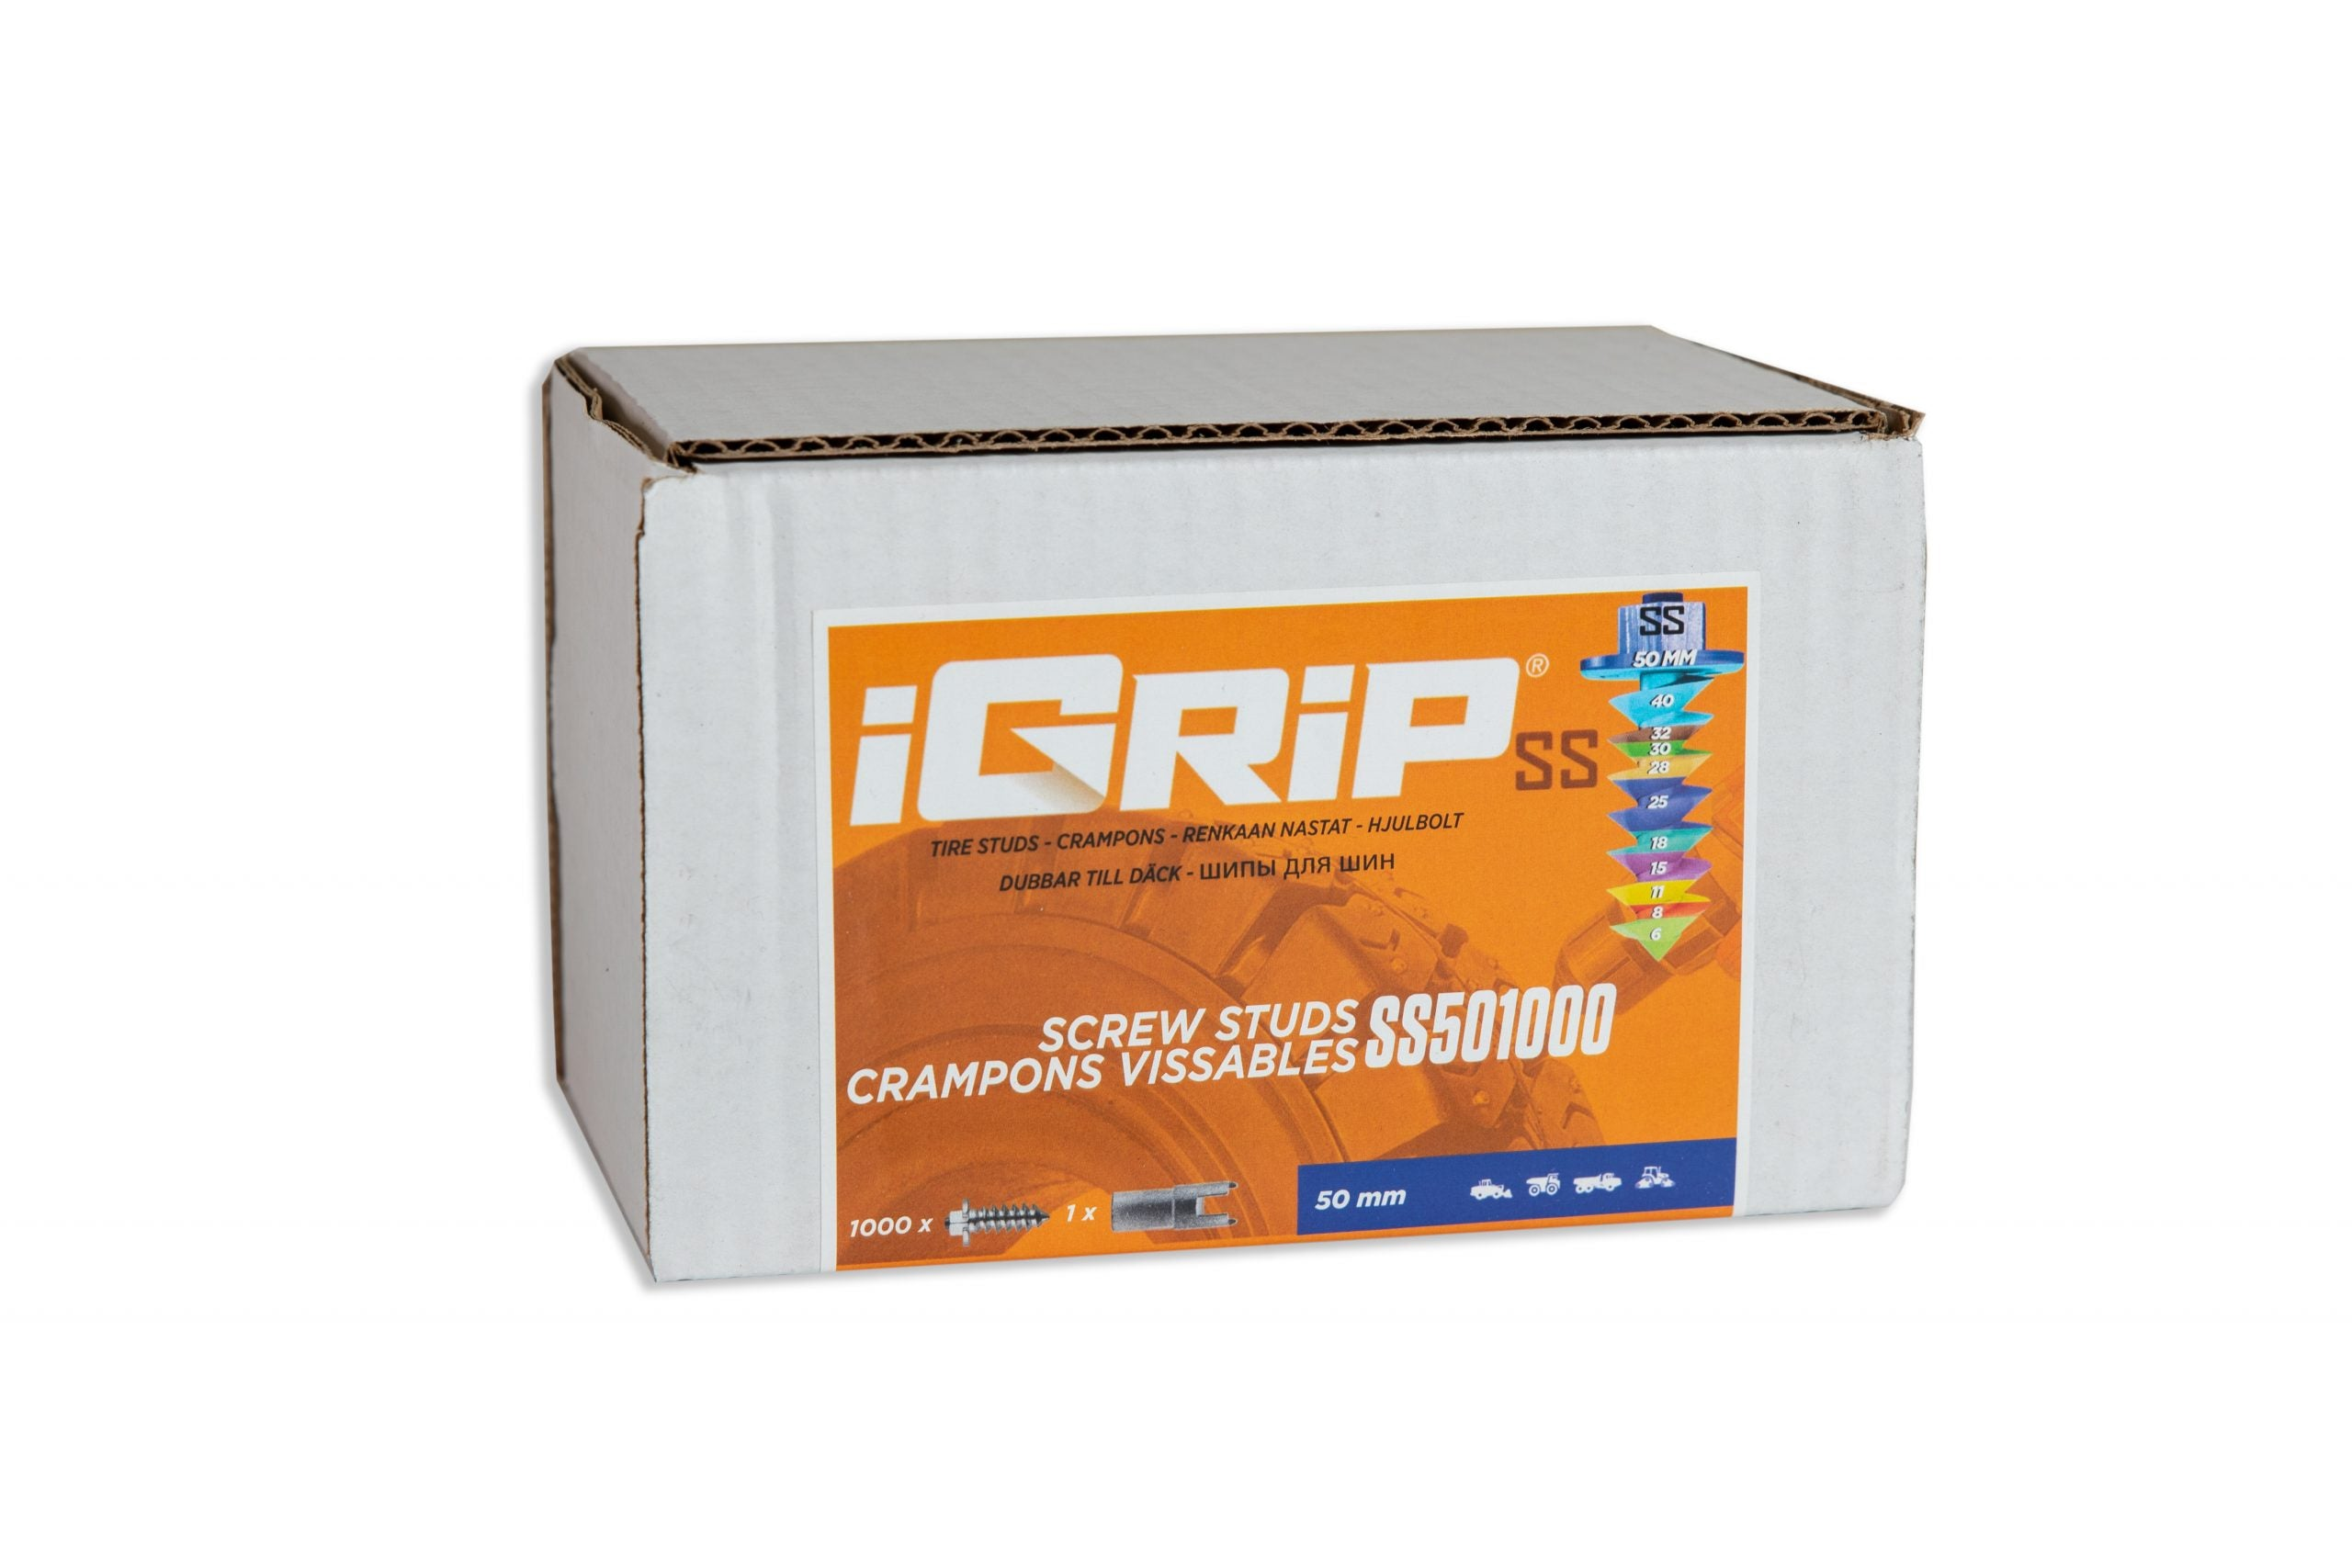 SS-50 Shouldered iGrip Tire Studs